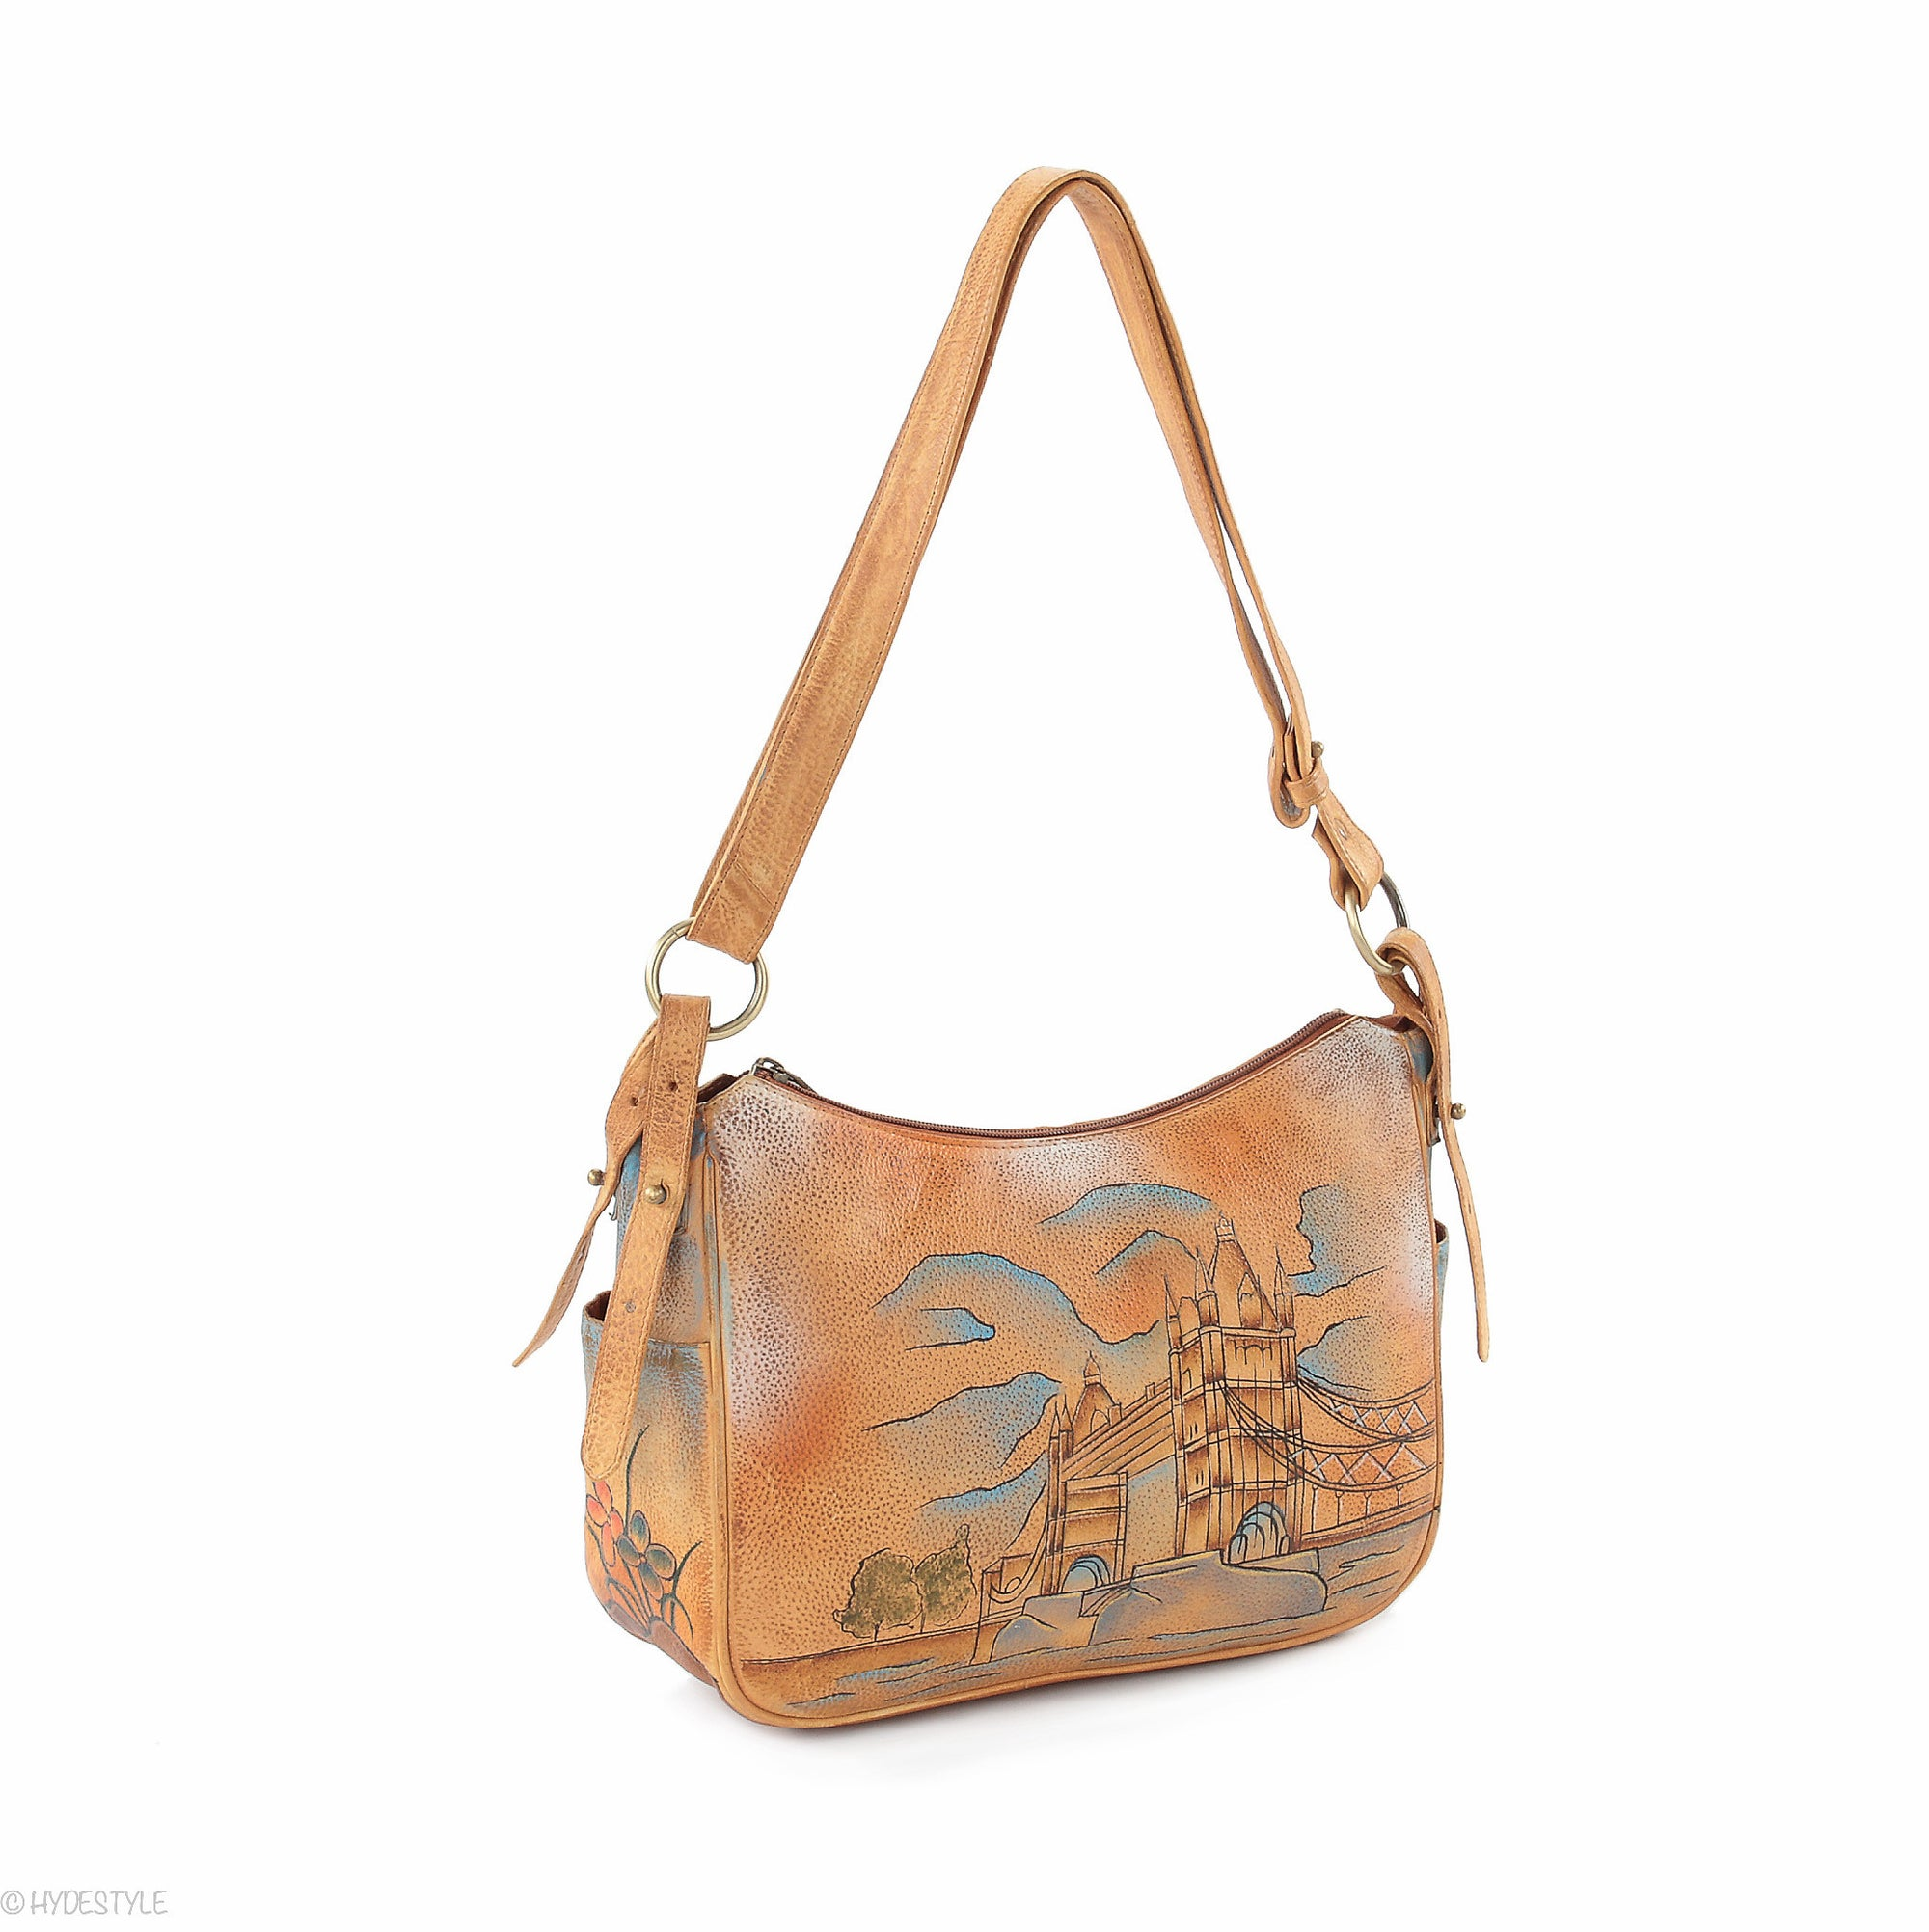 Picta Manu hand painted leather hobo bag #LB21 Tower Bridge